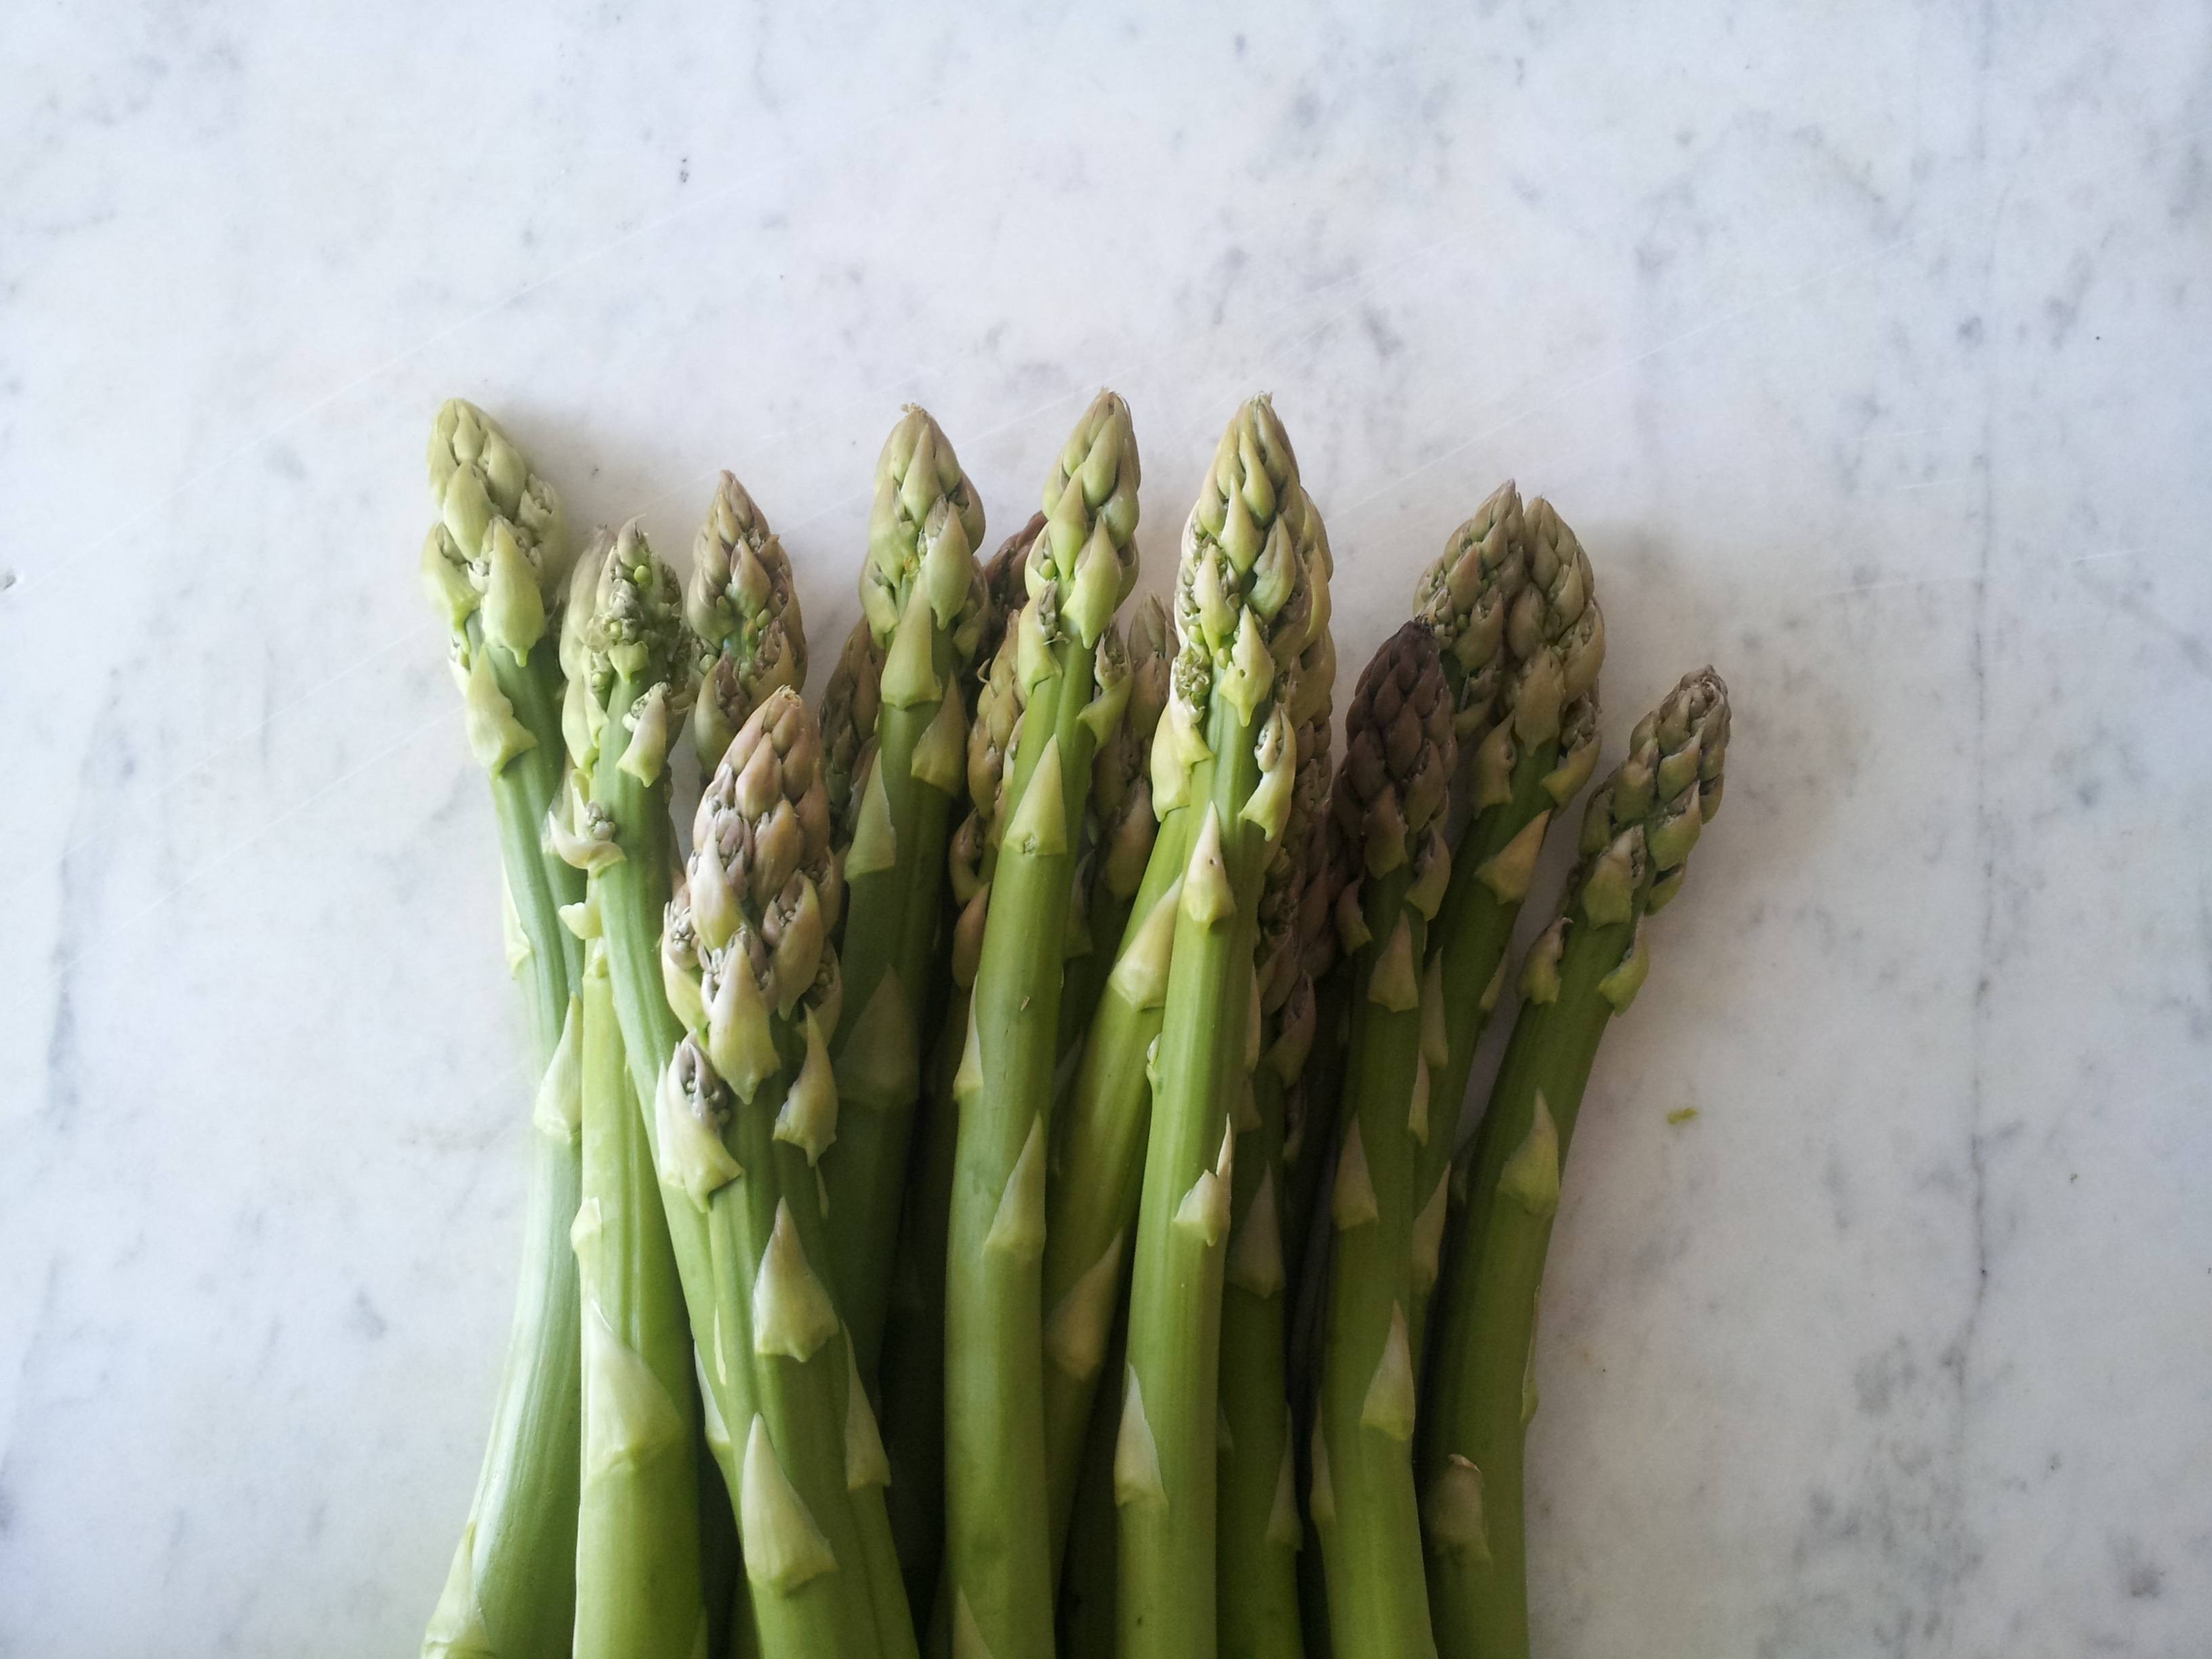 Asparagus from These 21 Foods Are Making You Smell Bad